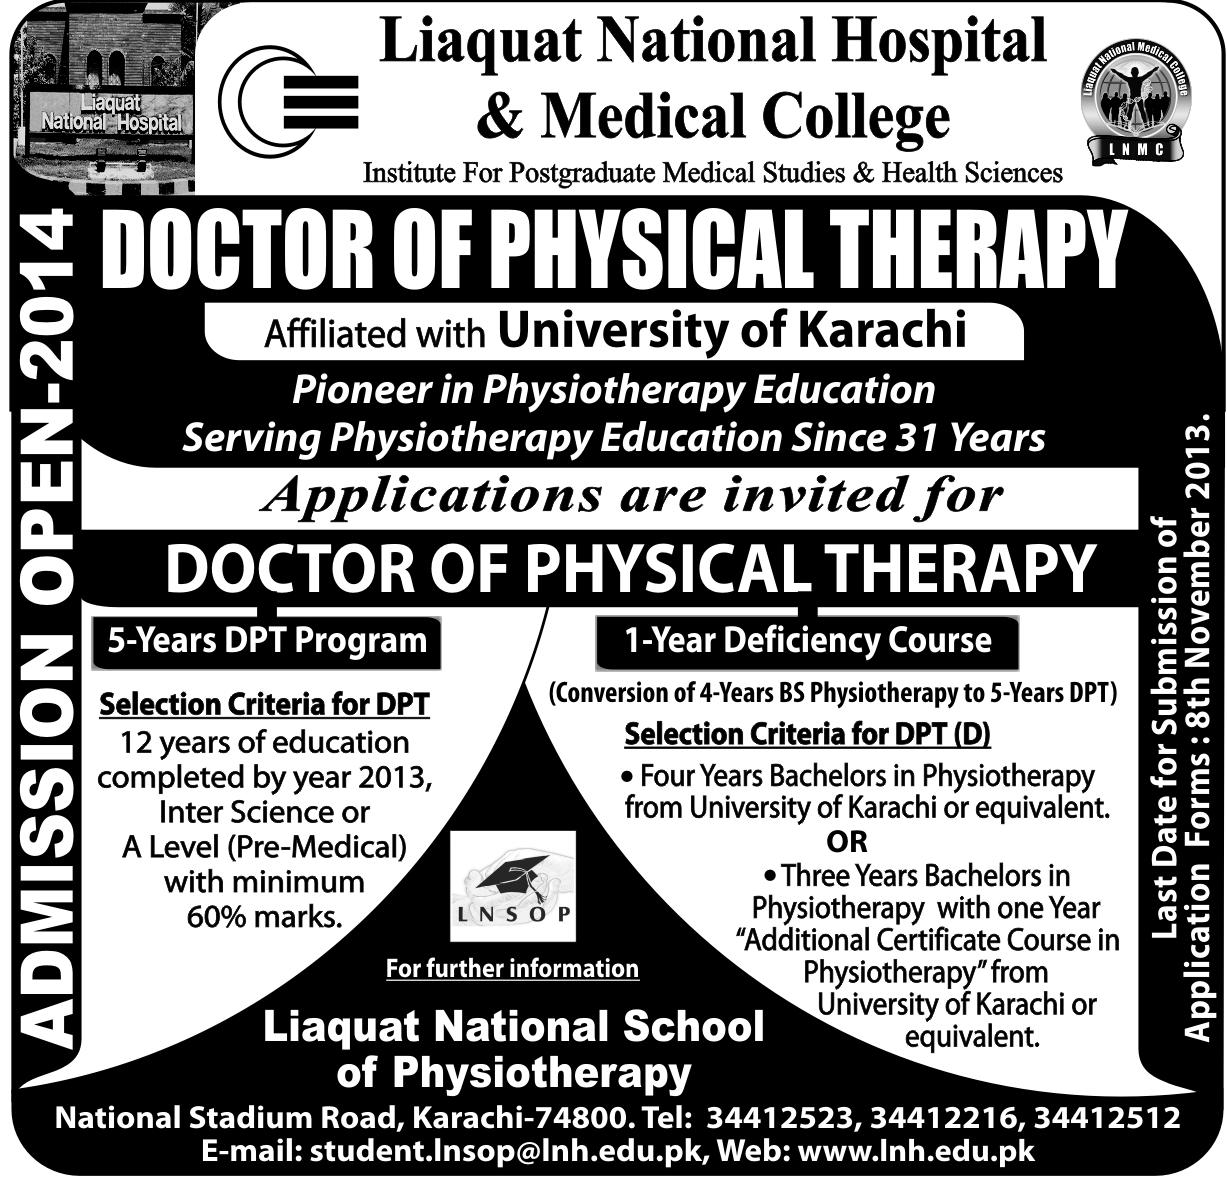 Liaquat National Hospital and Medical College Karachi Admission Notice 2013